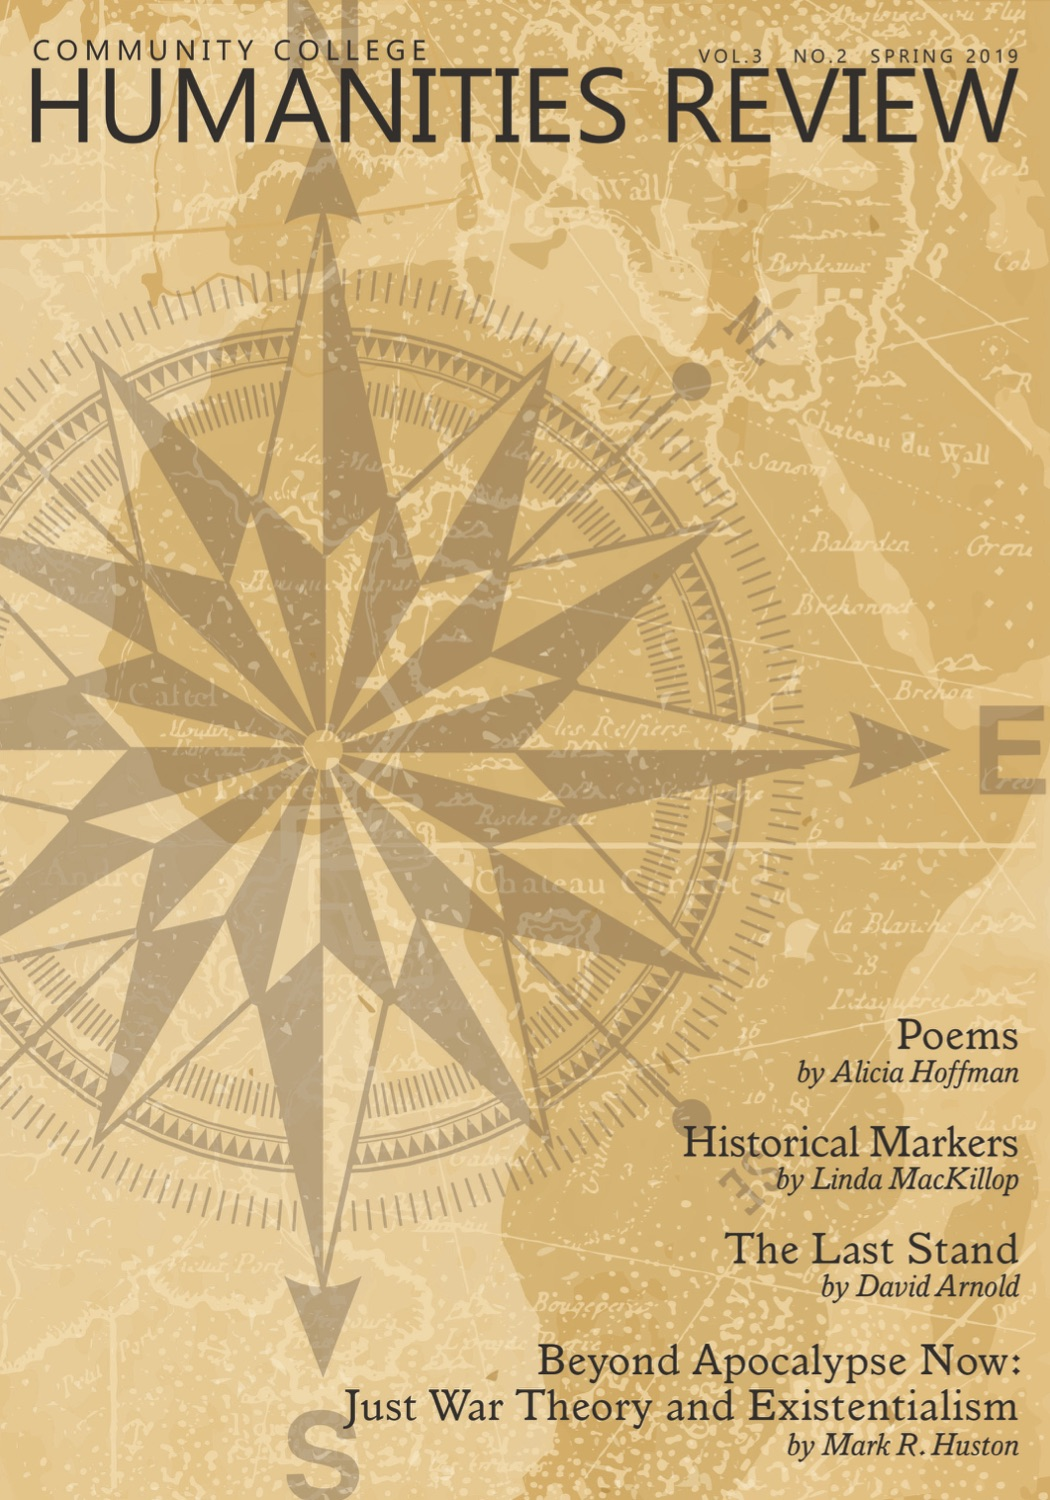 Yellow compass rose cover of the spring 2019 CCHR